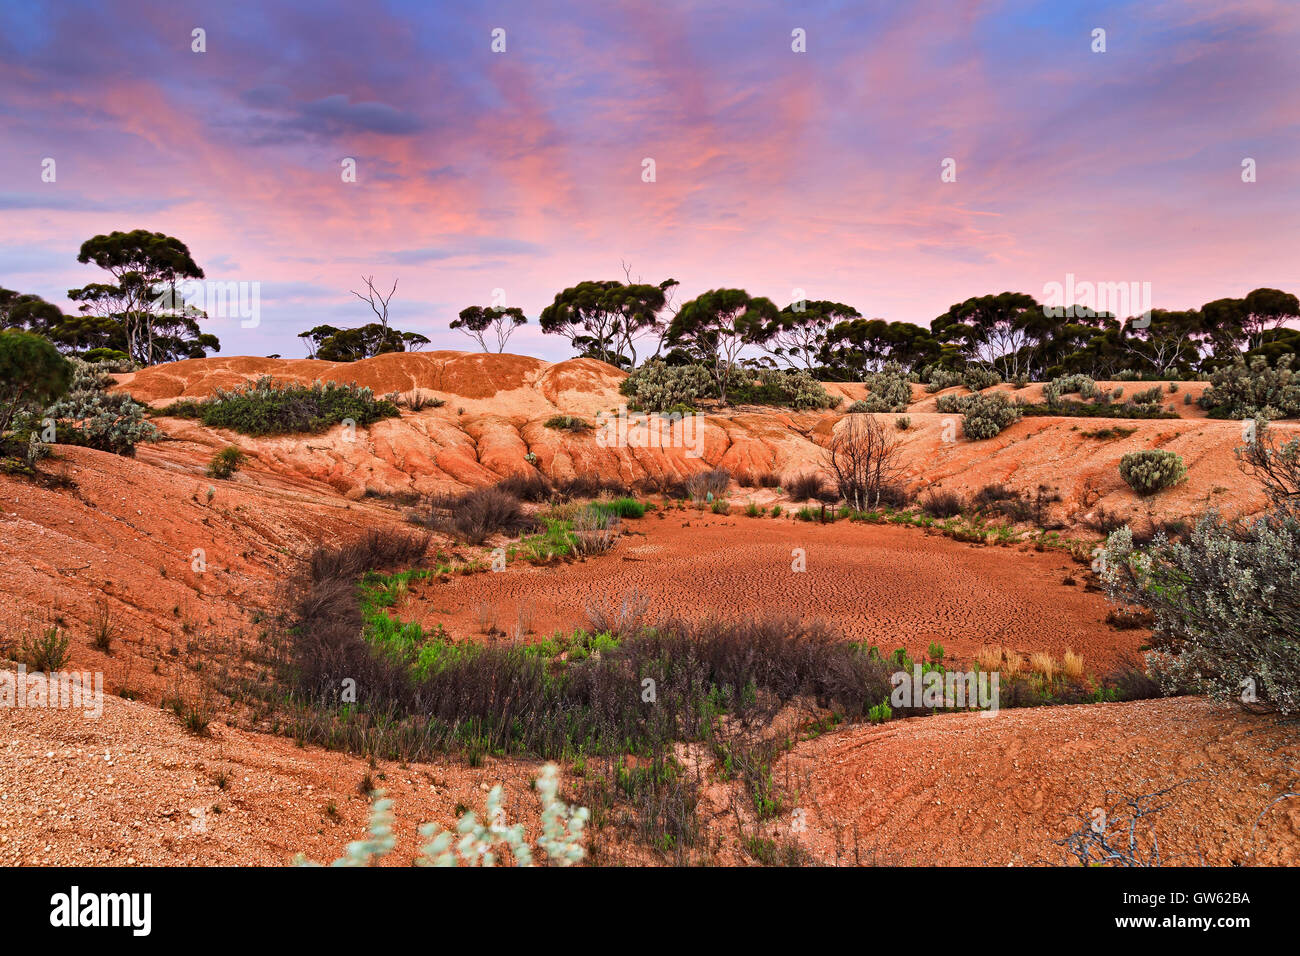 Dried water pit of billabong in remote western australian outback near Balladonia roadhouse. Red soil of remote - Stock Image